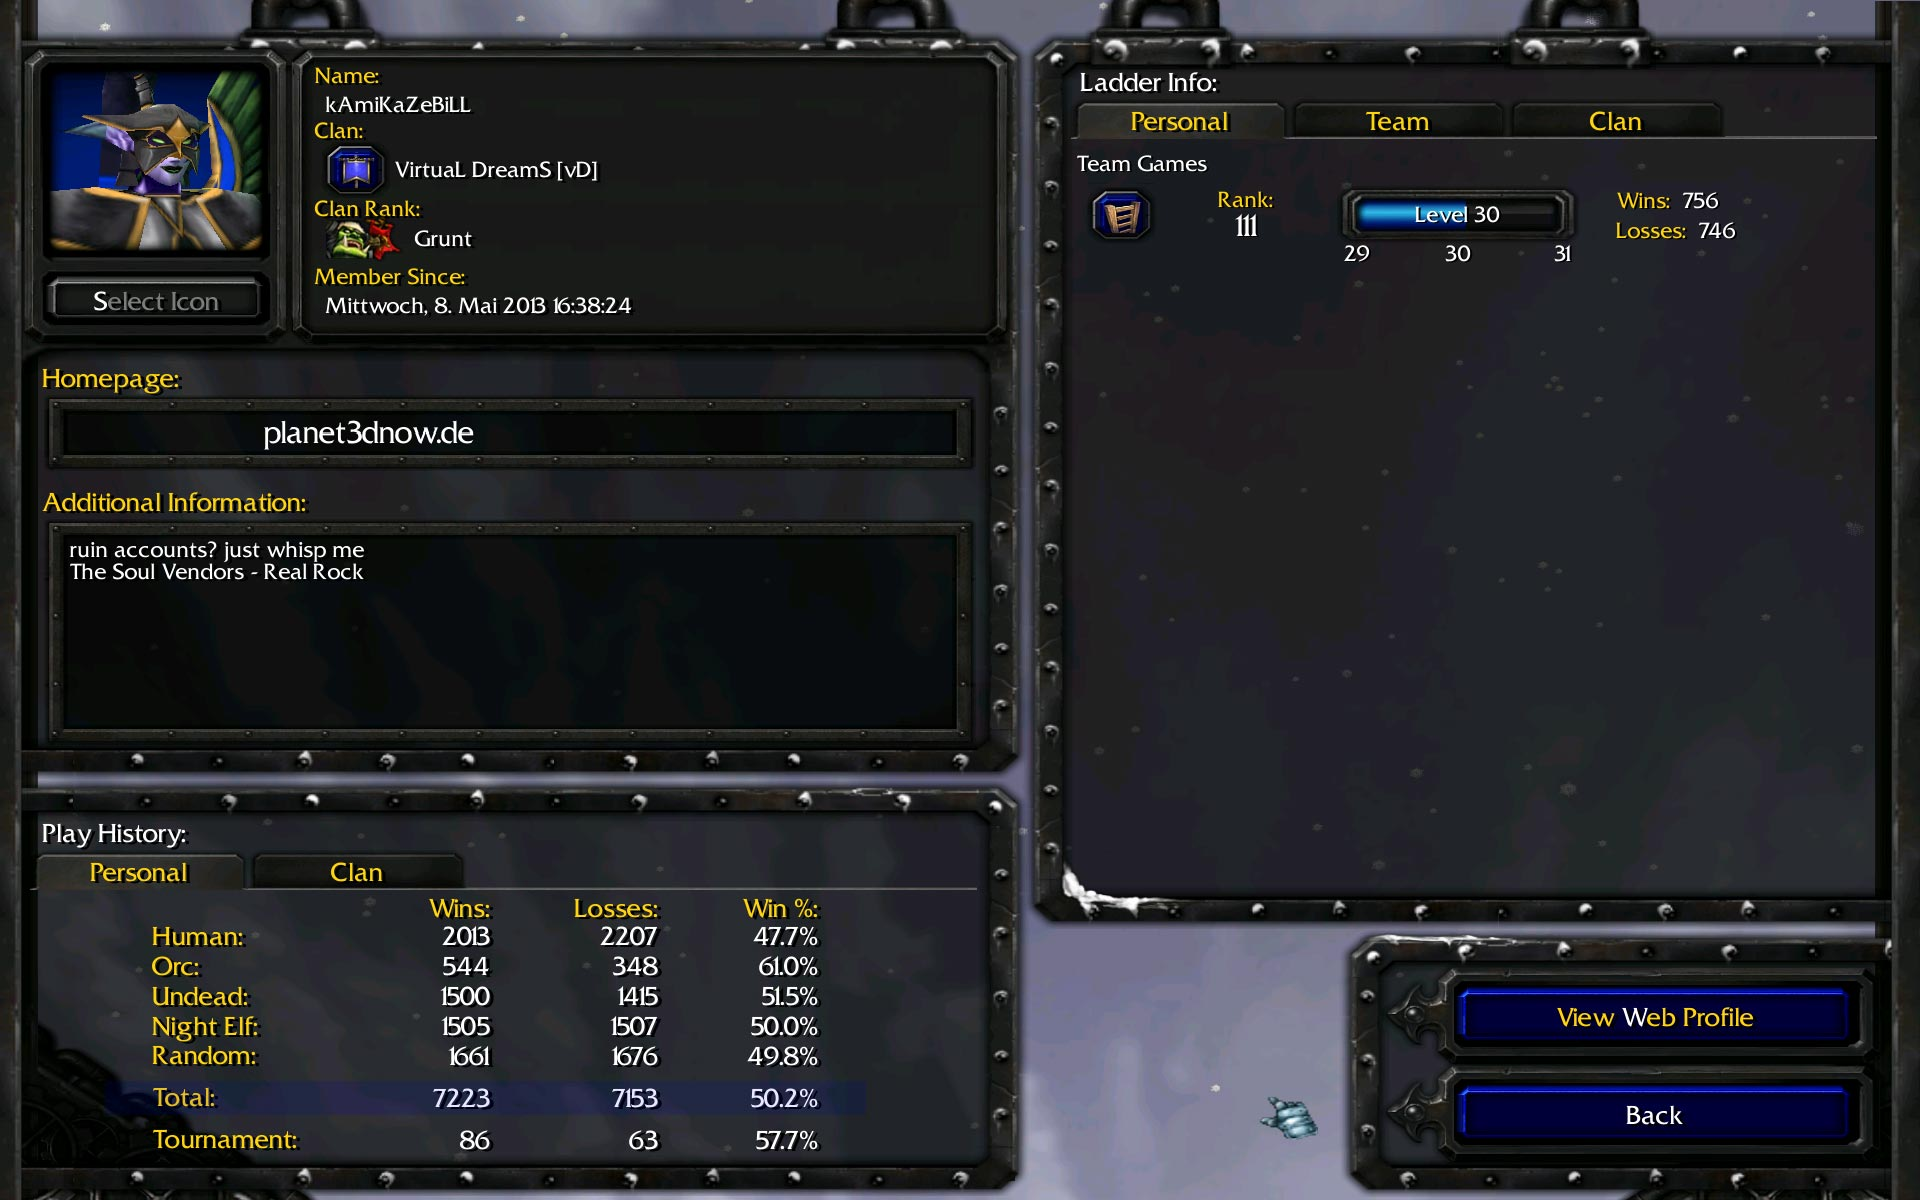 warcraft-3-profile-kamikazebill-many-games